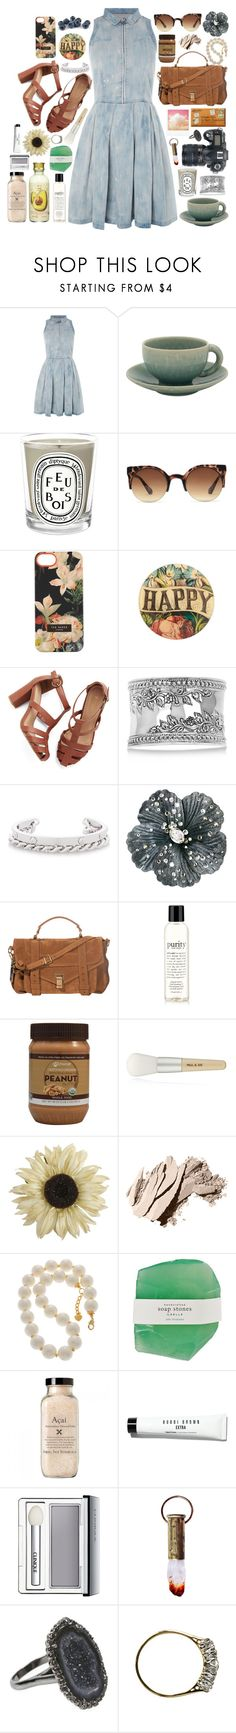 """""""Daydream"""" by shazellove ❤ liked on Polyvore featuring Levi's, Jars, Diptyque, Ted Baker, Jayson Home, Allurez, Henri Bendel, Tarina Tarantino, Proenza Schouler and philosophy"""